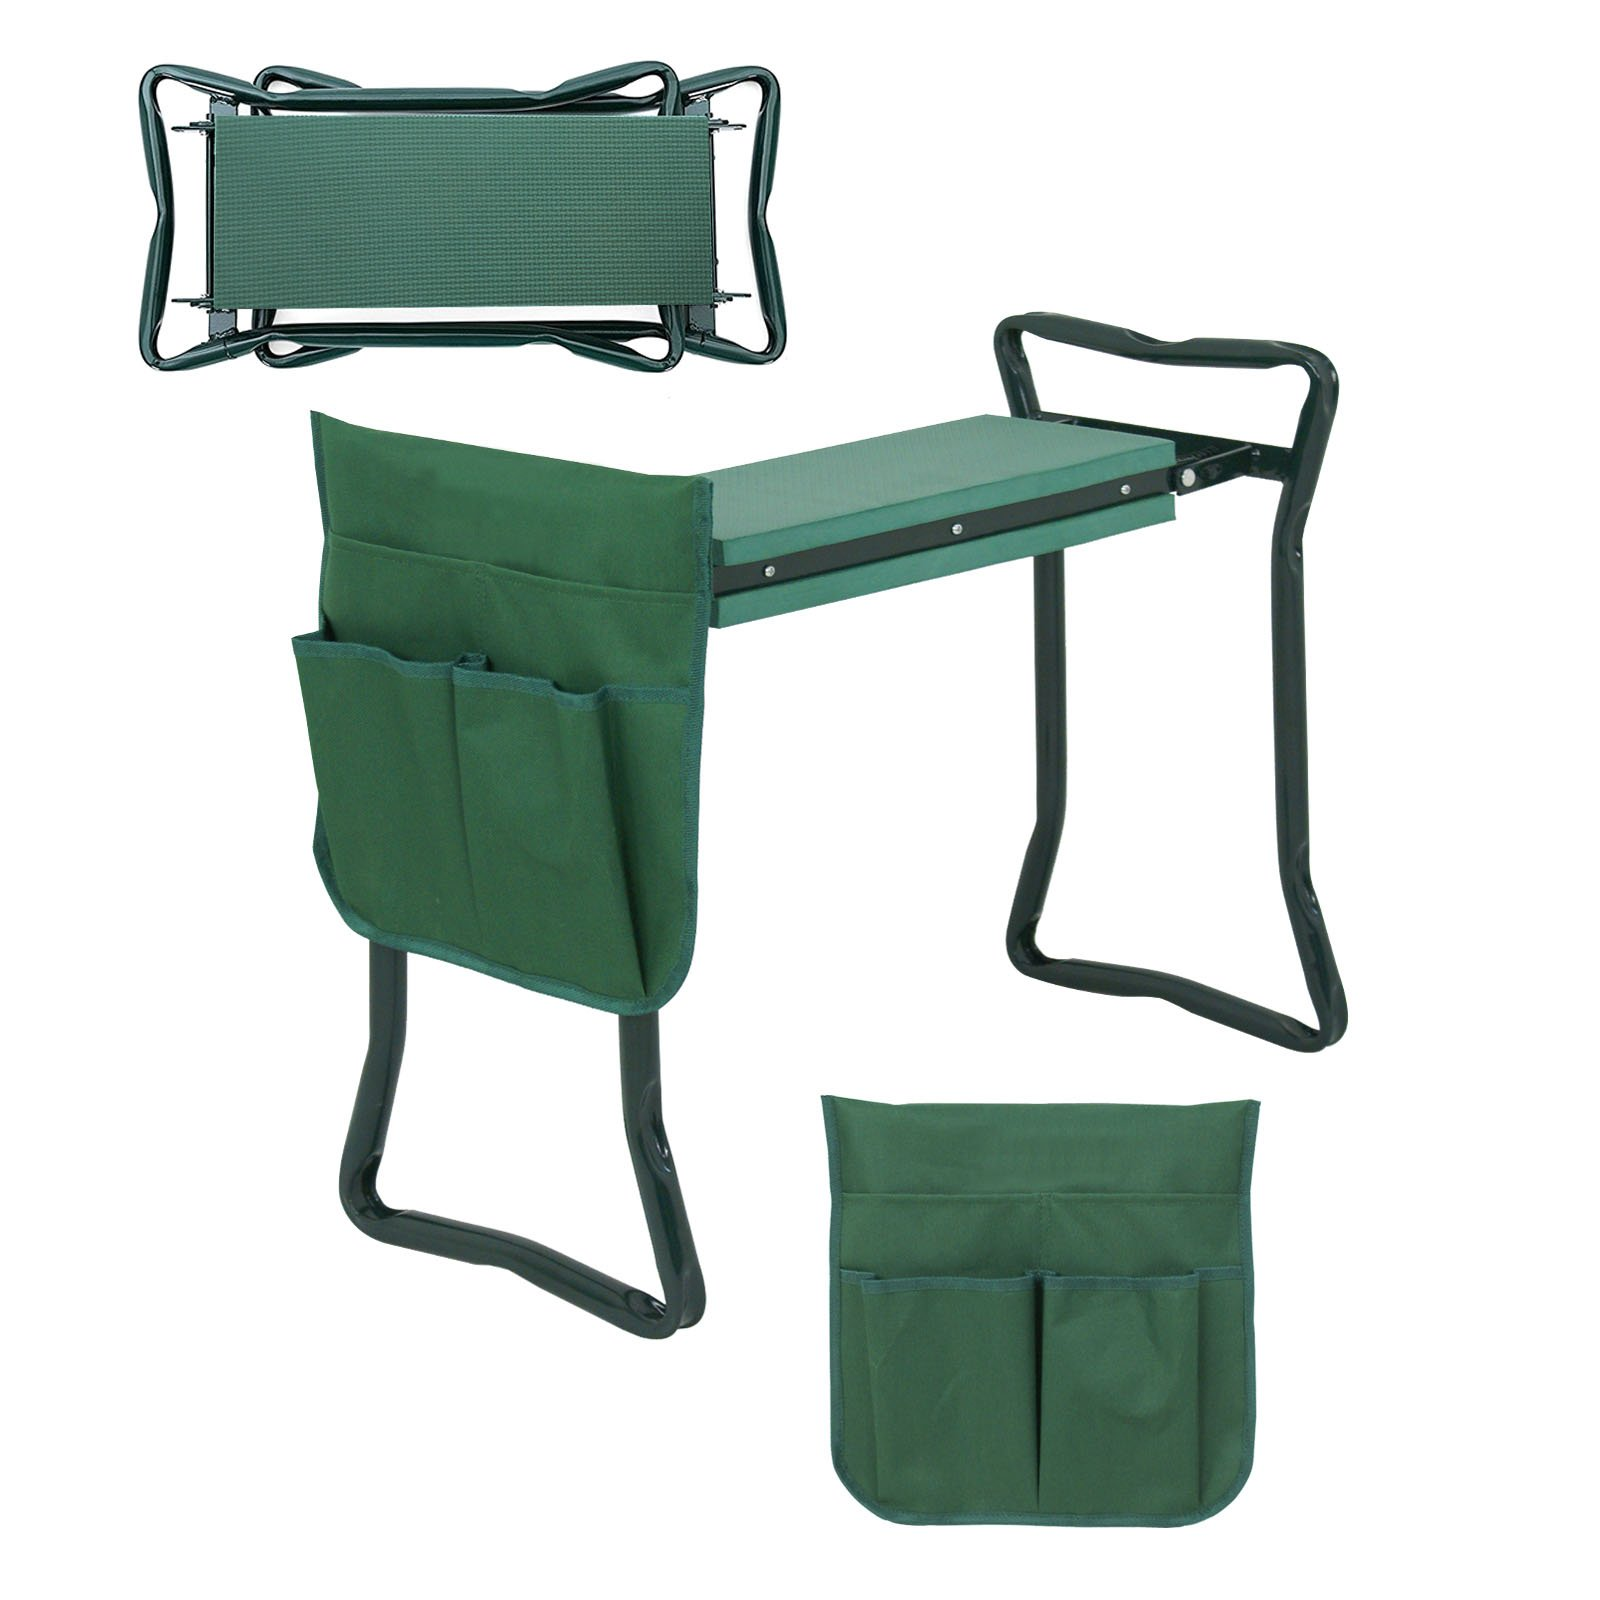 LEMY Portable Garden Kneeler Seat Multiuse EVA Foam Pad Garden Bench Foldable Garden Stool with Tool Bag Pouch (24 3/8'' x 10 7/8'' x 19 1/8'')